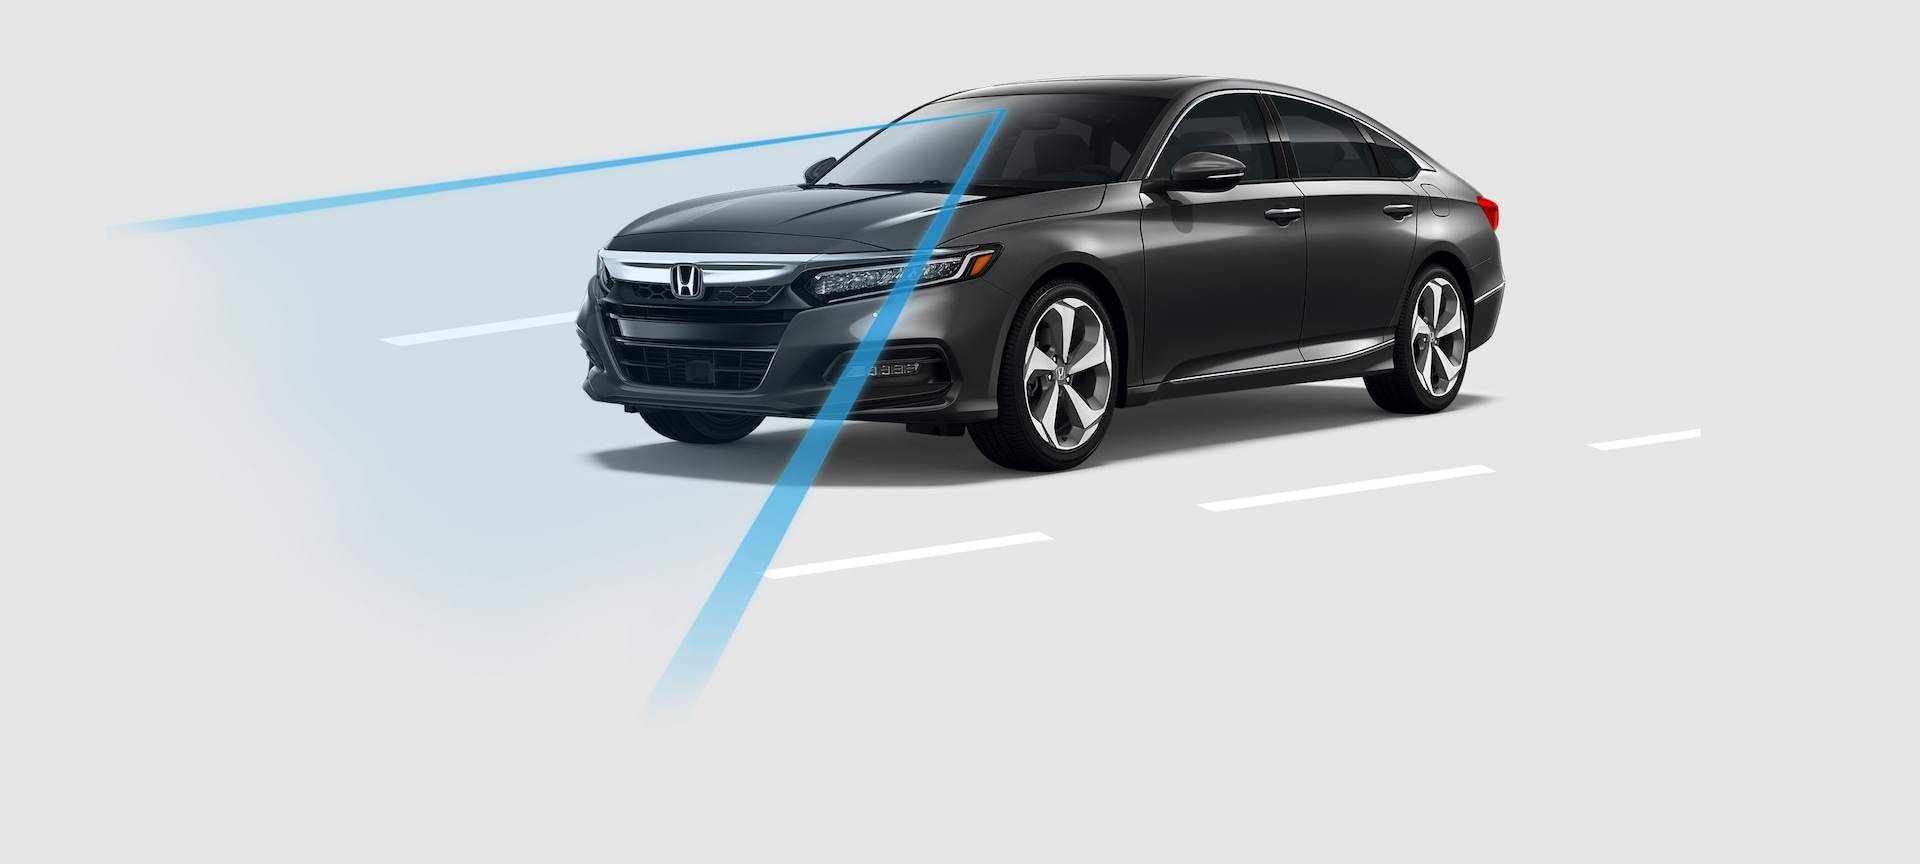 Front 3/4 of 2019 Honda Accord with demonstration of Lane Keeping Assist System (LKAS).